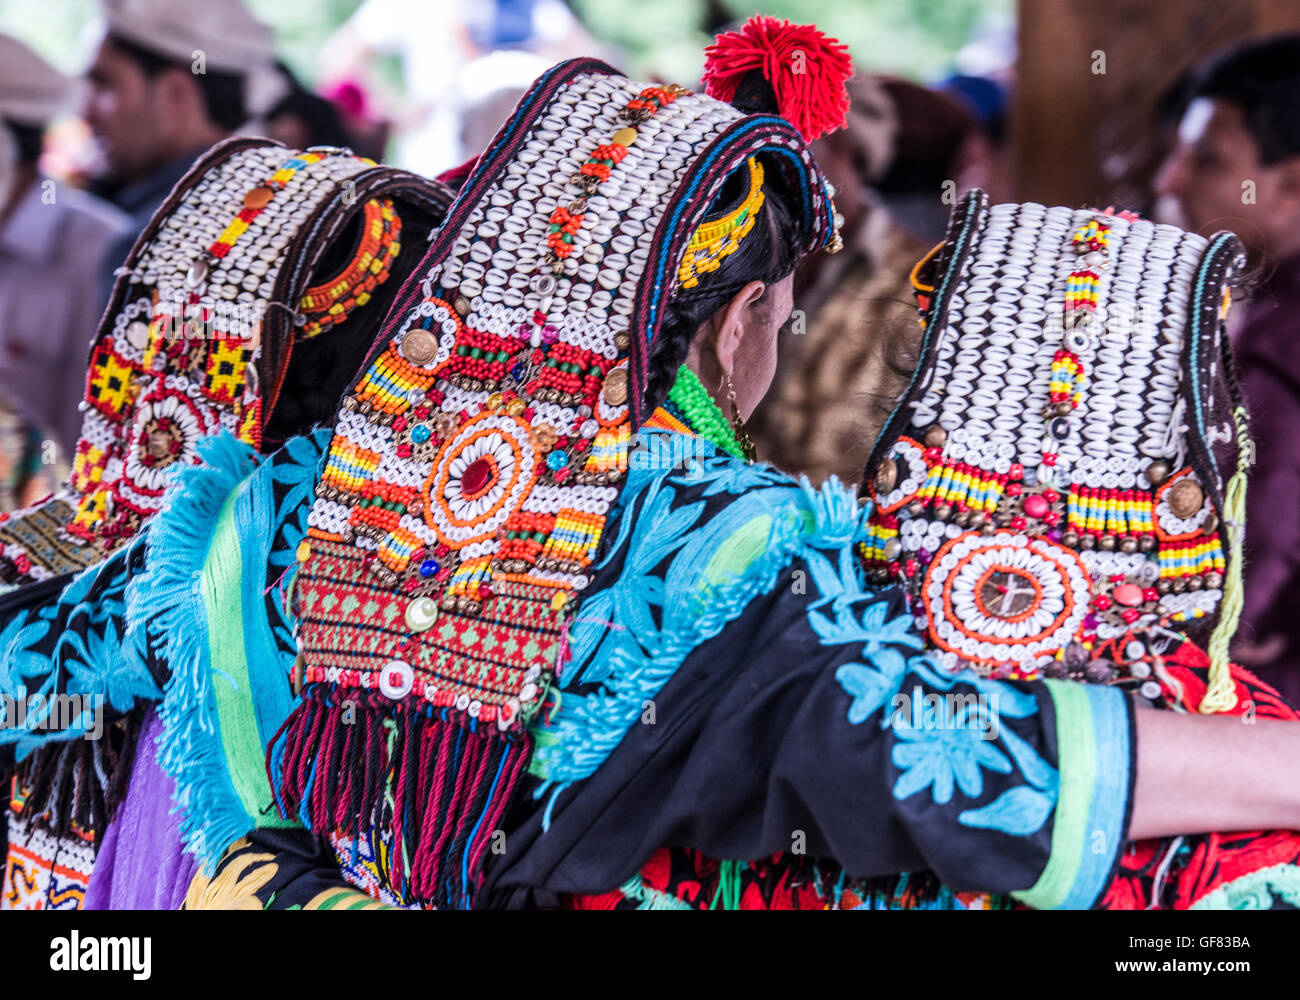 Kalash women show off their traditional headdresses decorated with cowrie shells. The are wearing embroidered dresses. - Stock Image